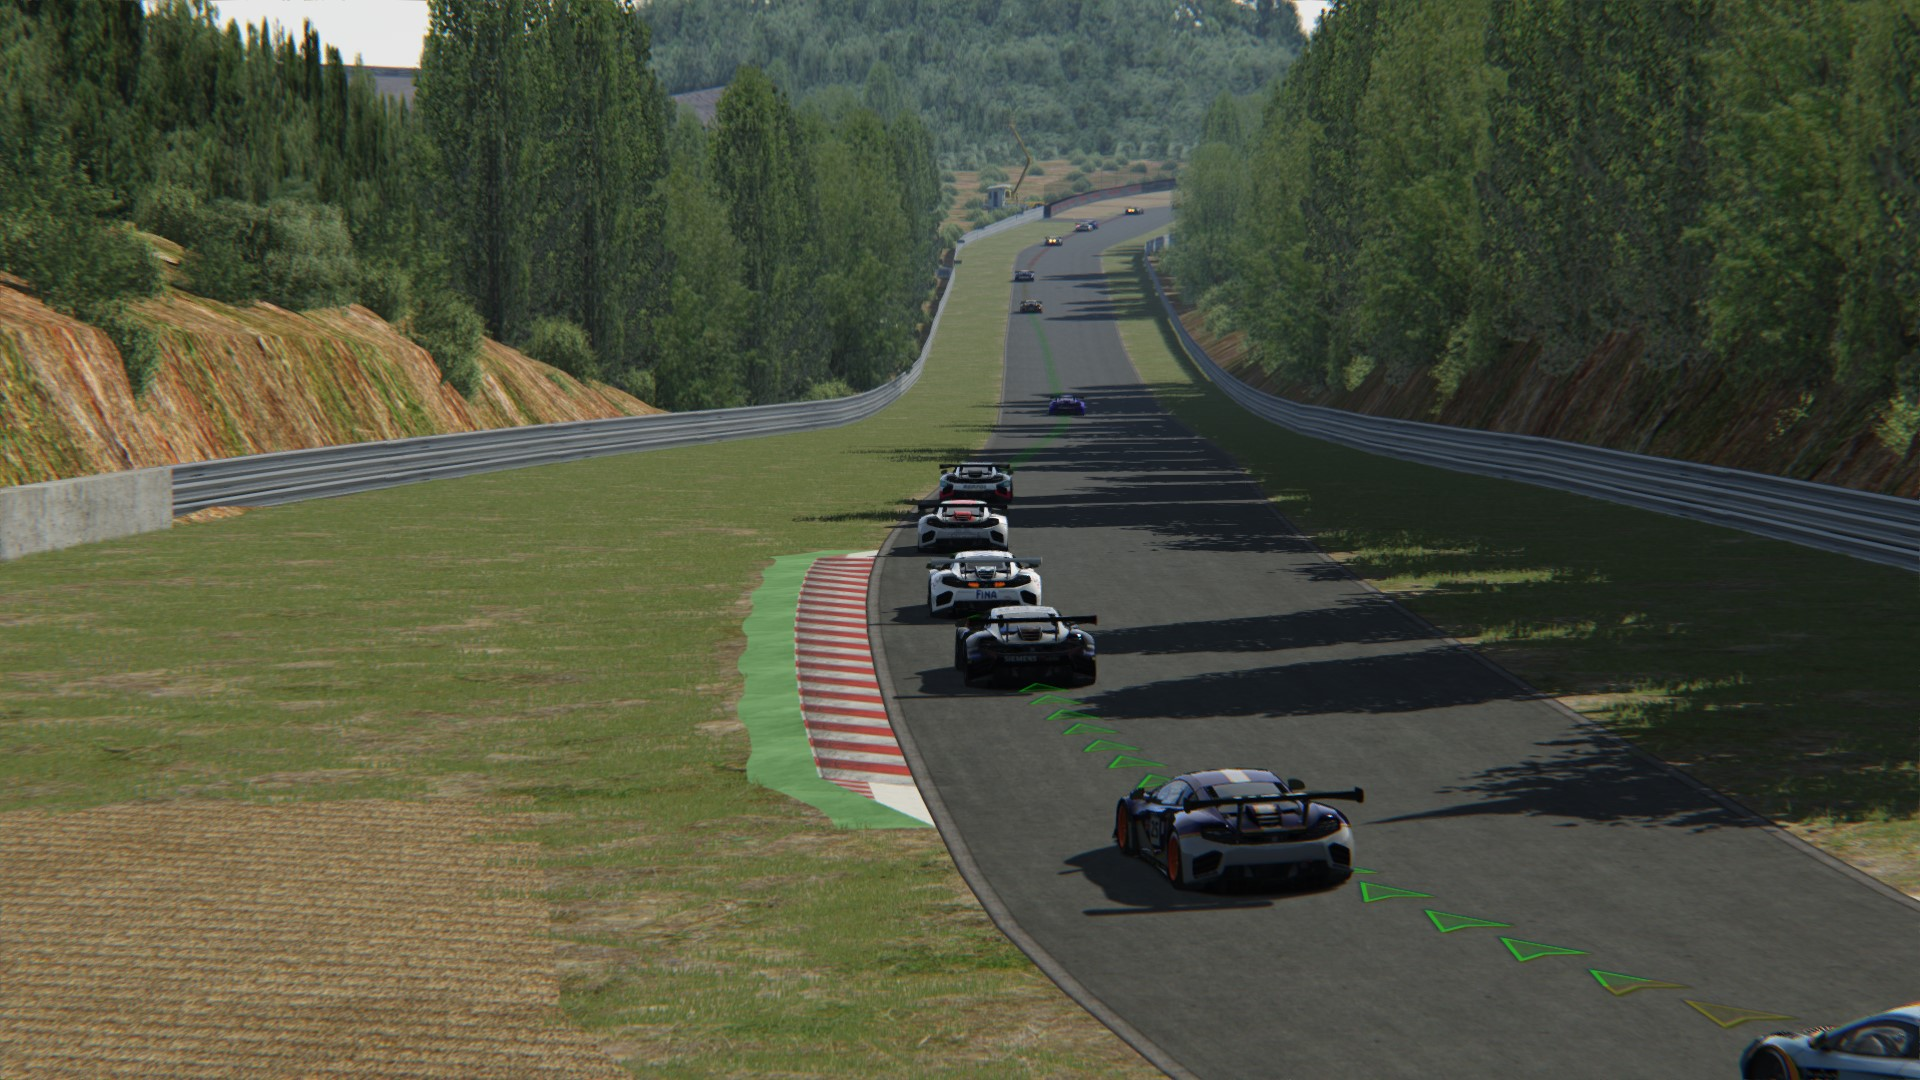 Screenshot_mclaren_mp412c_gt3_sportsland_sugo_7-4-116-9-59-25.jpg